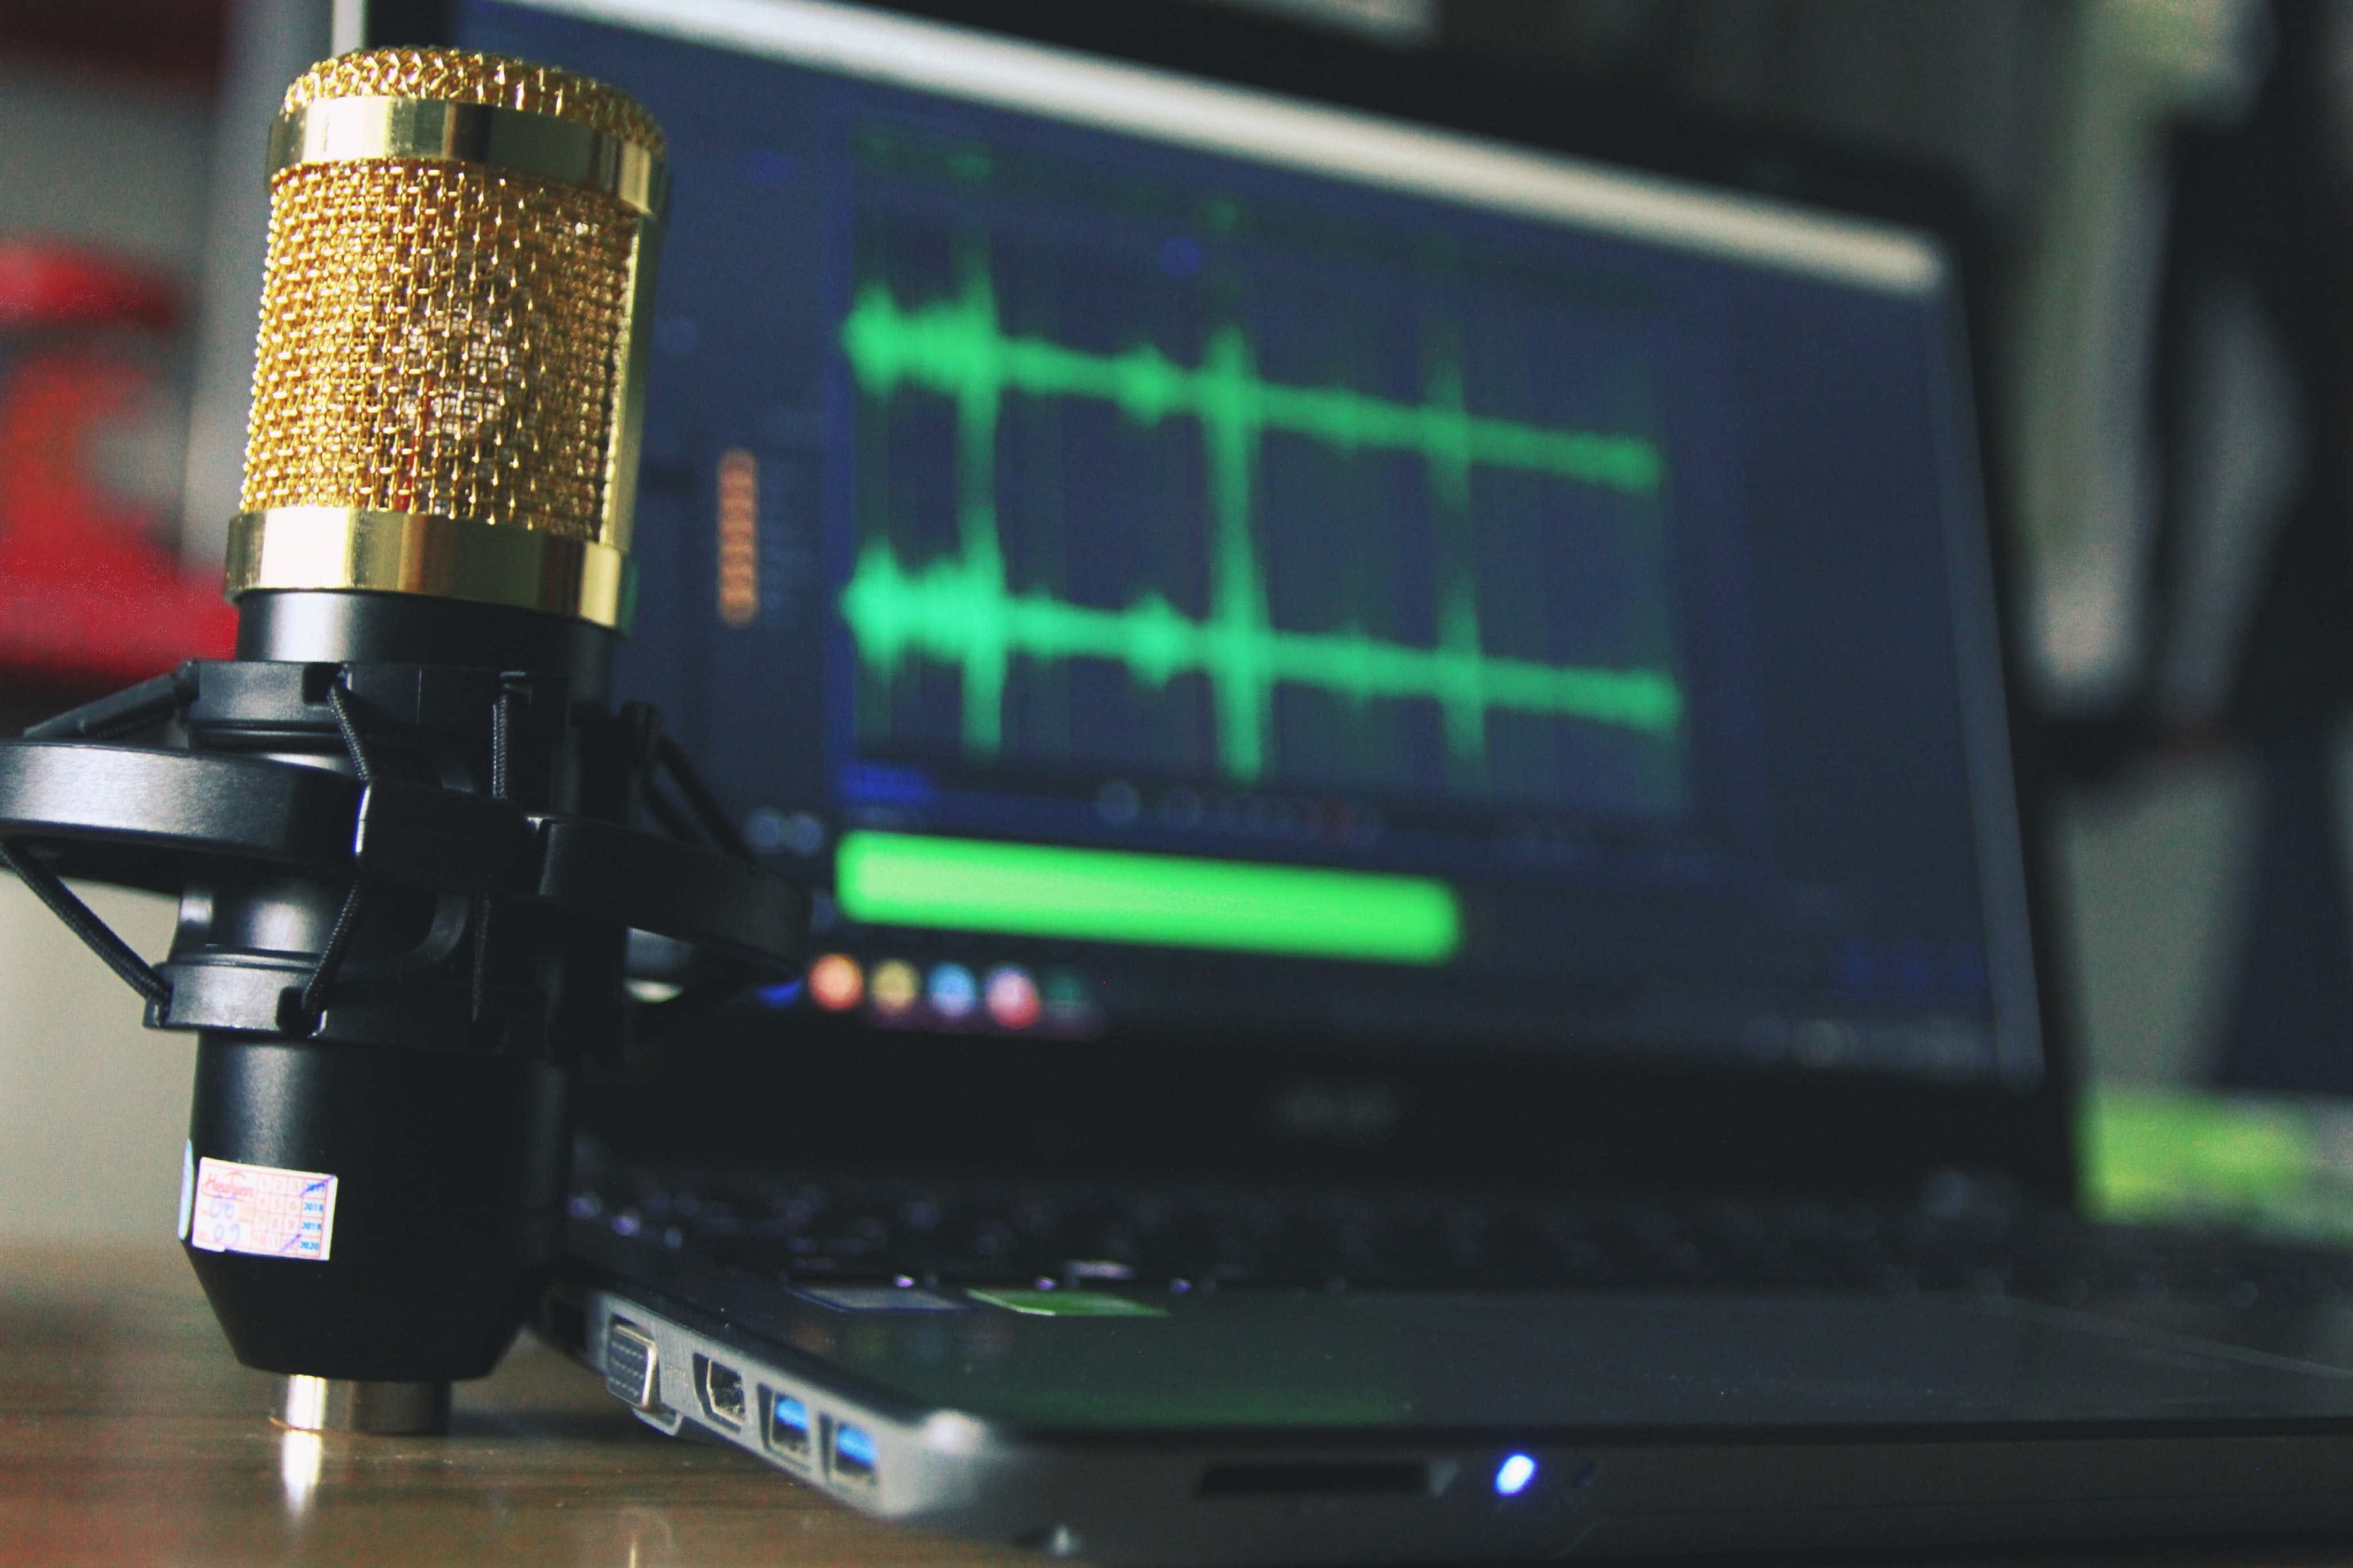 The UK Actor's Guide to Setting Up a Home Voiceover Studio